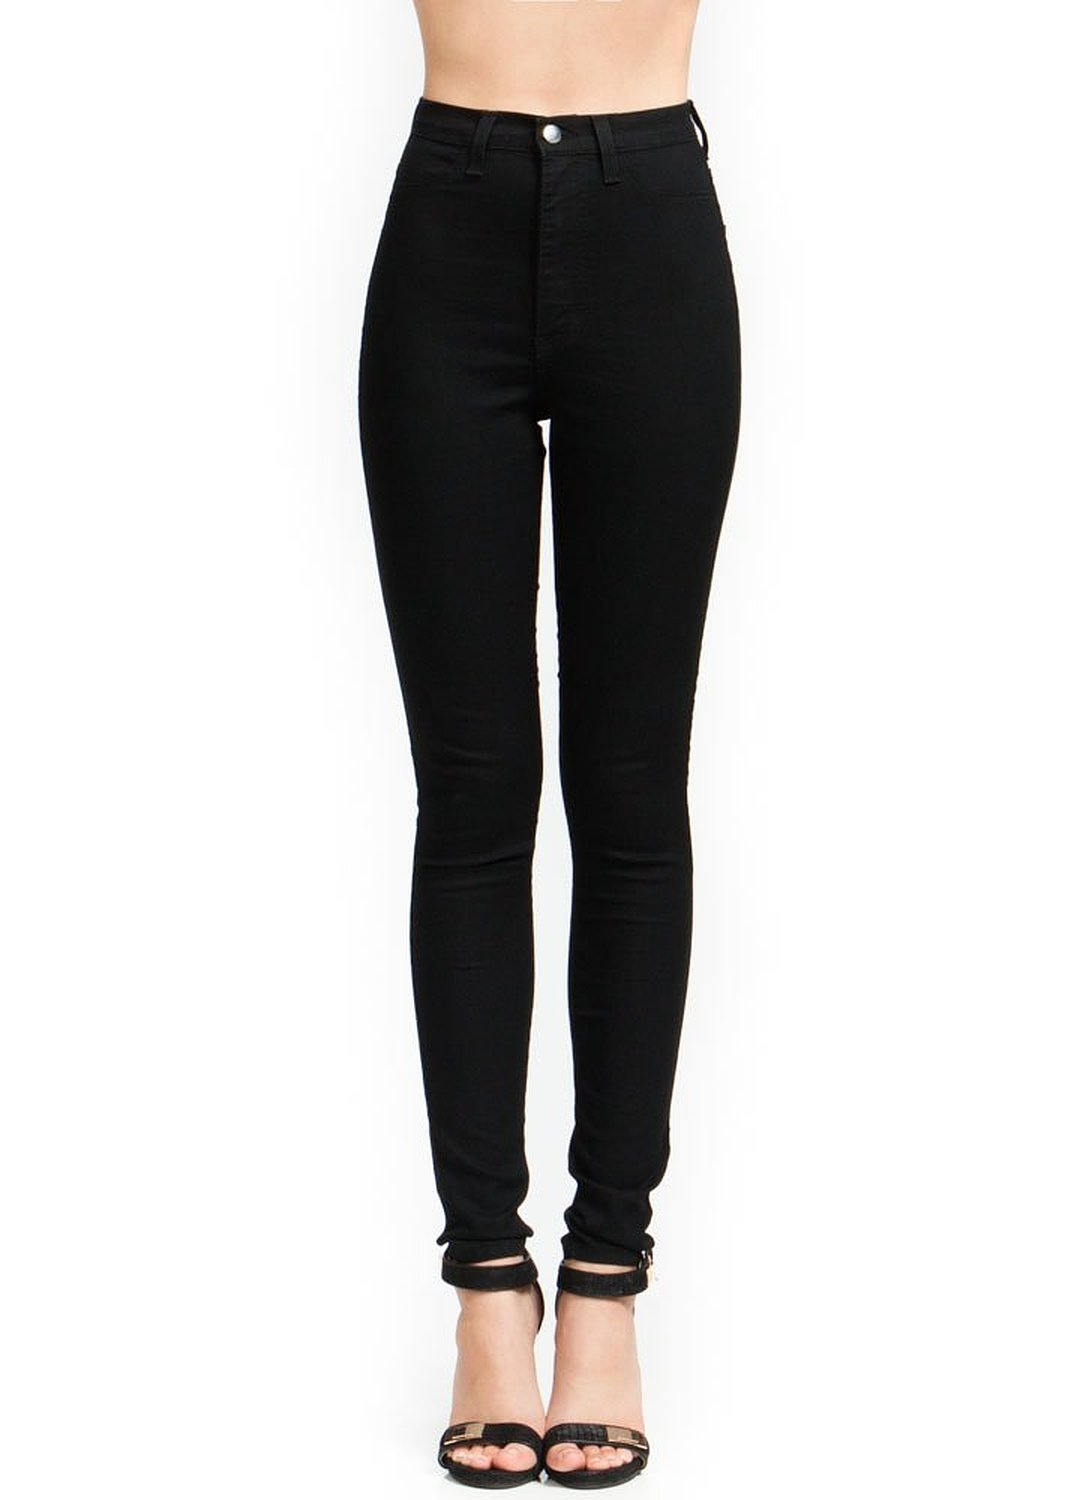 Waisted Skinny Jeans at Amazon Women's Clothing store: